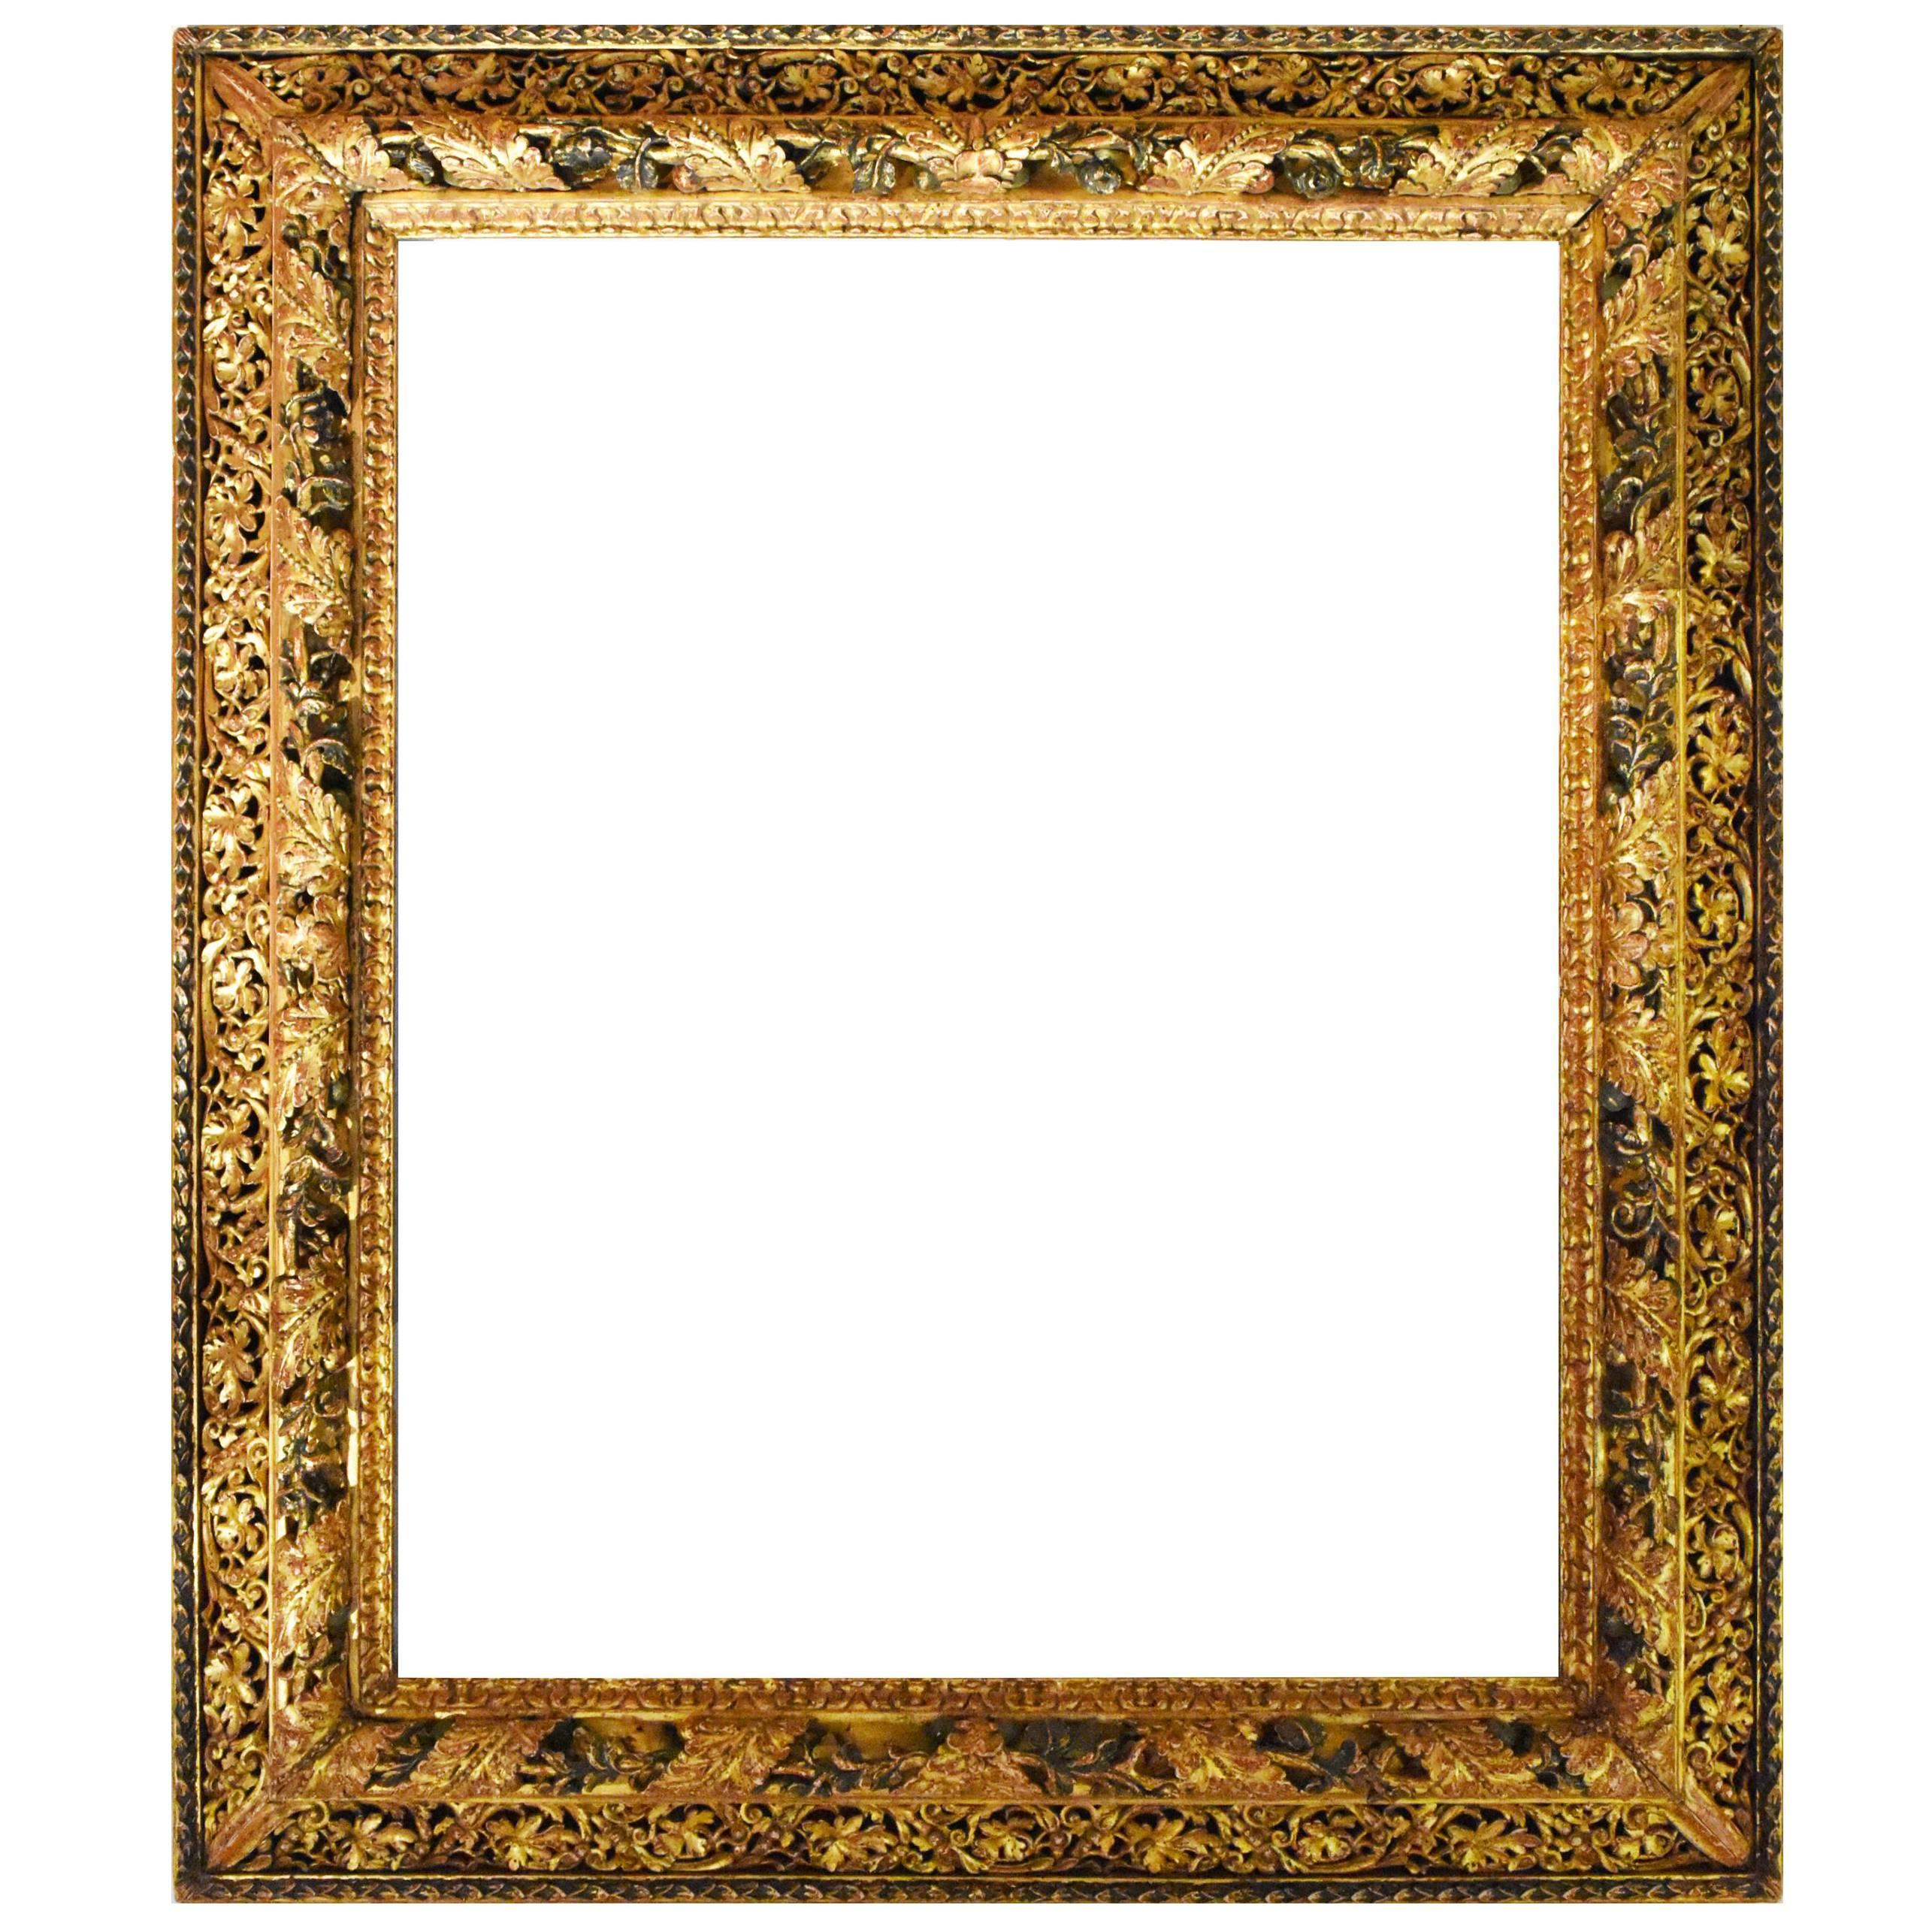 Early 19th Century Spanish Gold Gilded and Green Frame